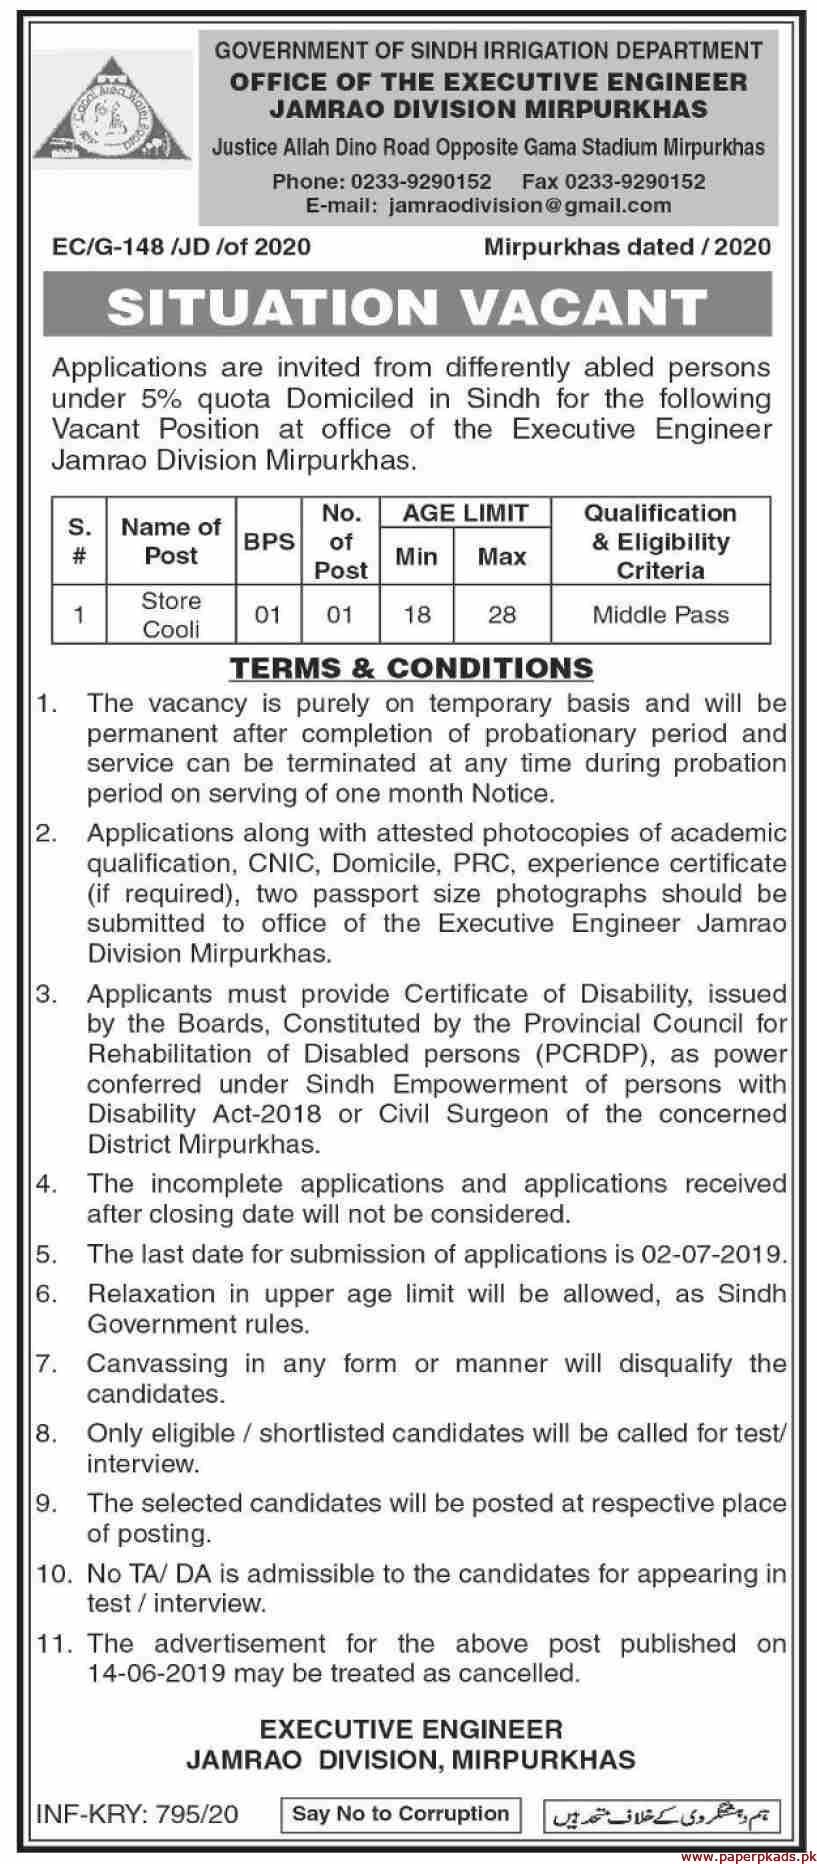 Government of Sindh Irrigation Department Jobs 2020 Latest